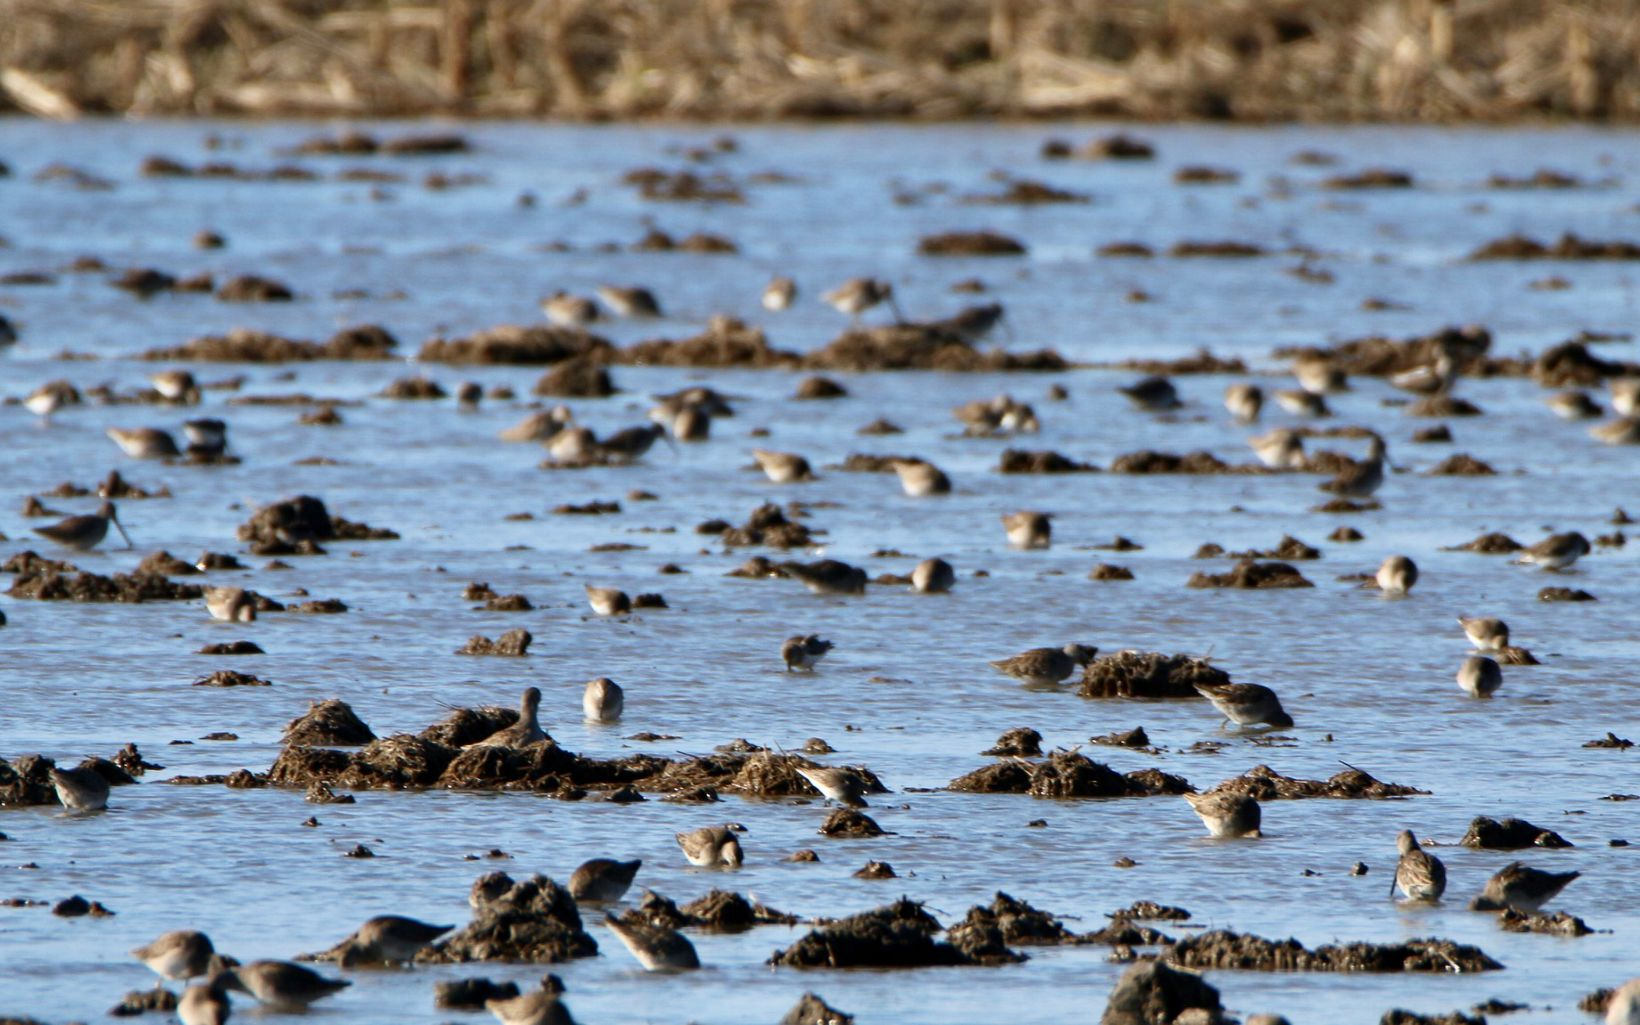 Migratory shorebirds forage for food and take a rest at pop-up habitat on a farm in CA's Colusa Valley